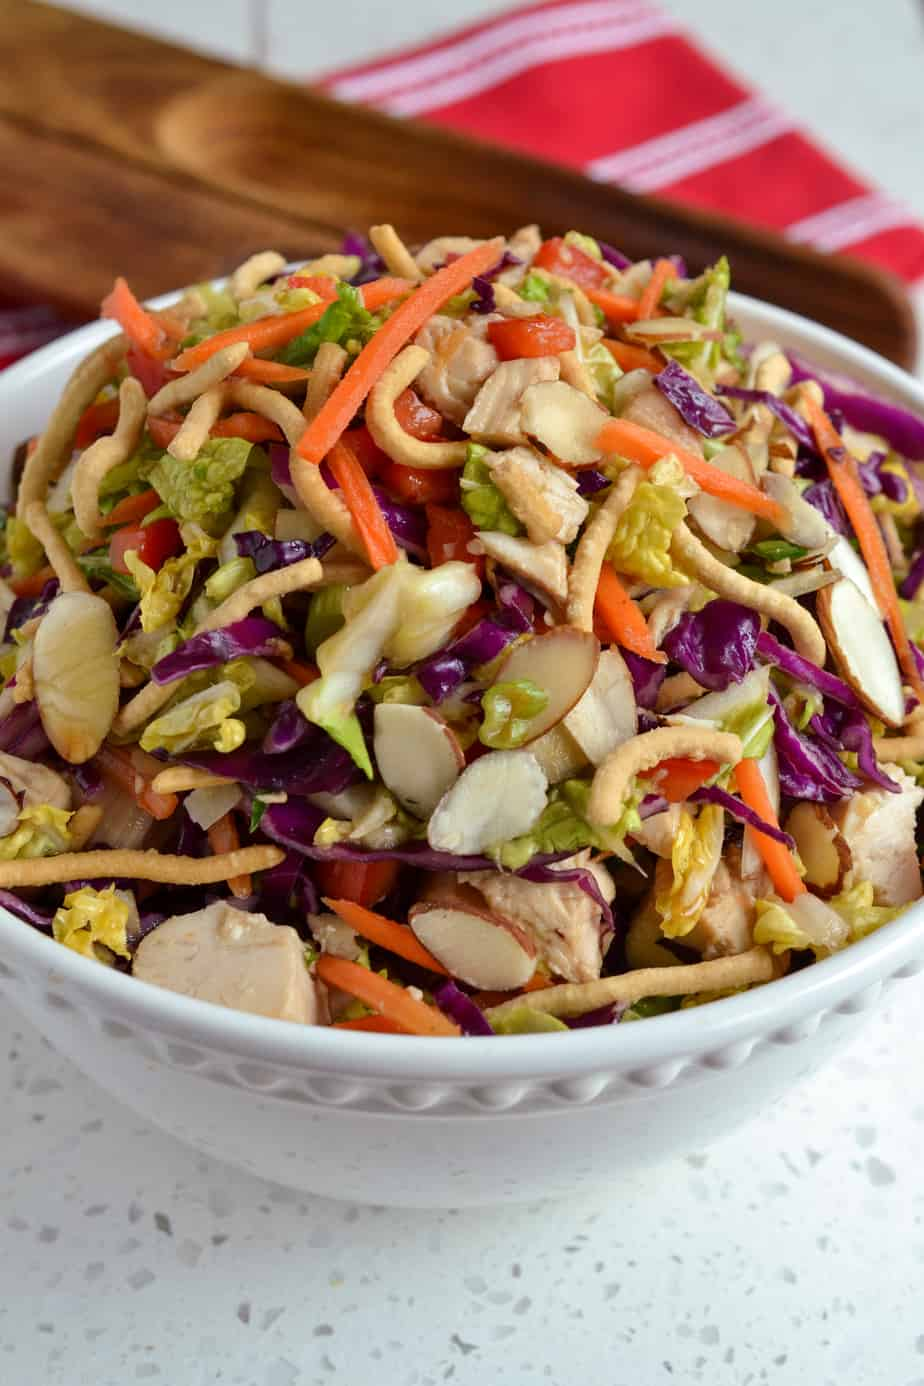 Chinese Chicken Salad with Napa cabbage, carrots and almonds.